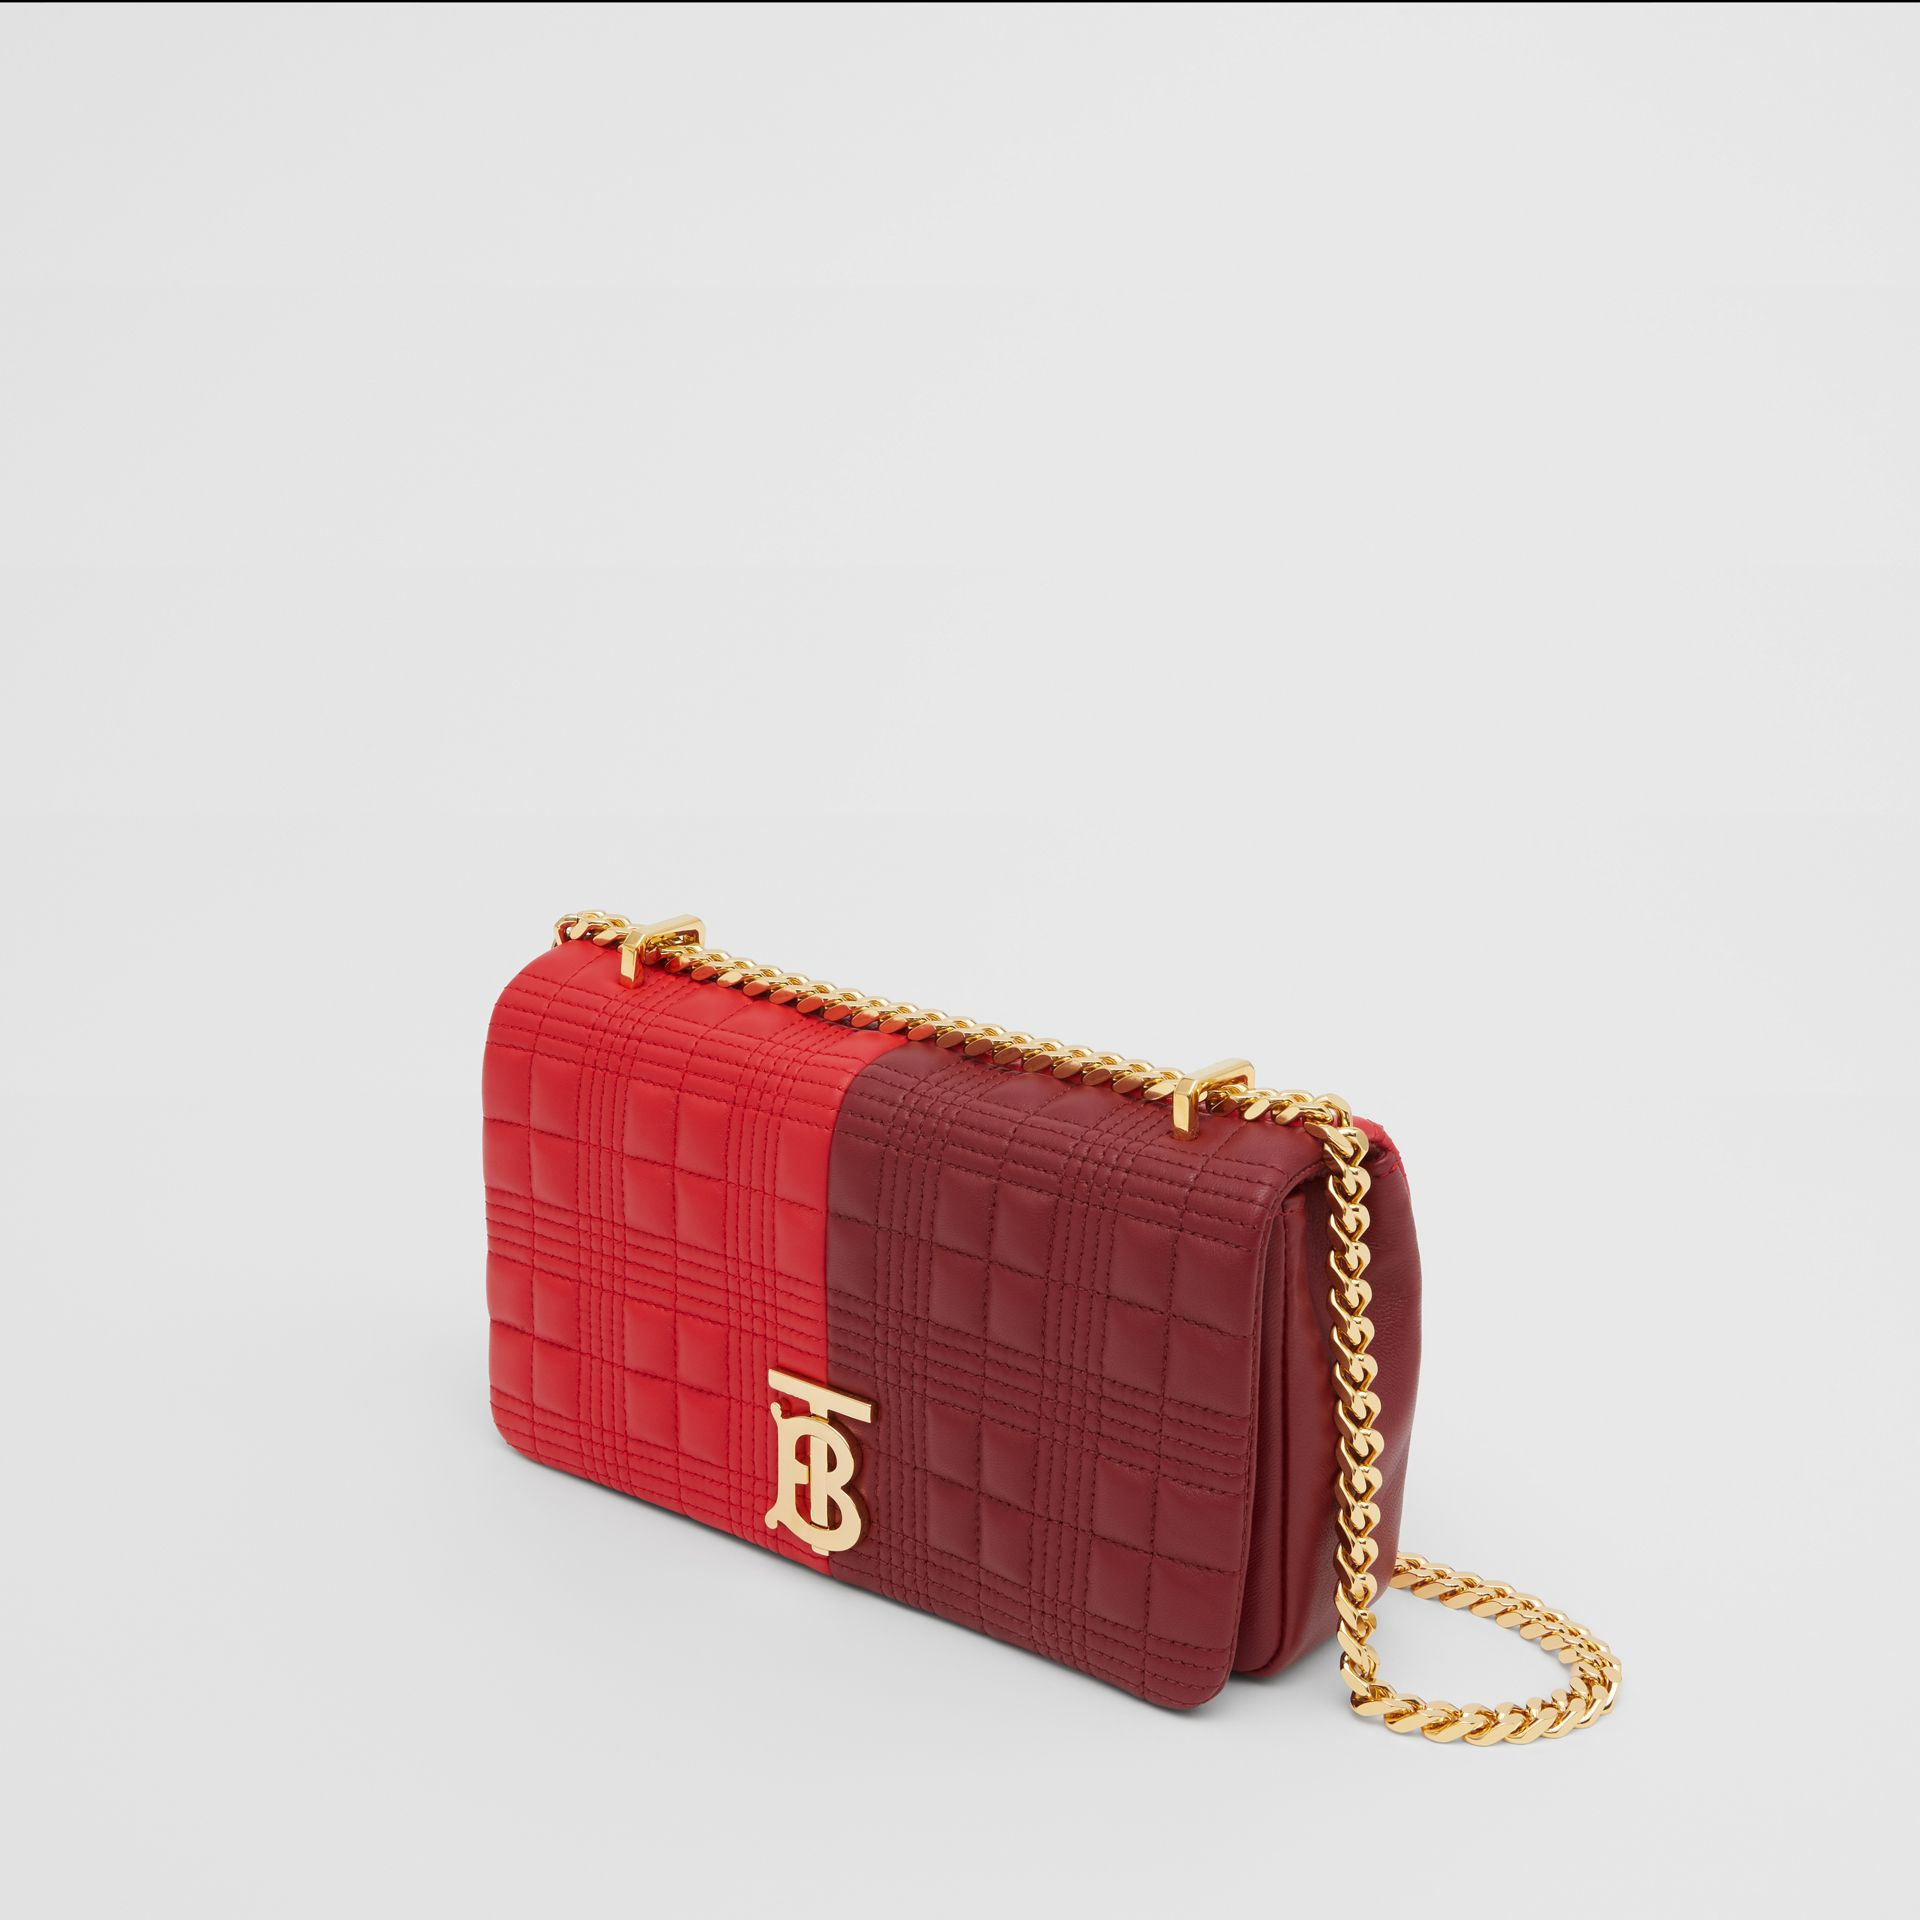 Small Quilted Colour Block Lambskin Lola Bag in Bright Red/burgundy - Women | Burberry - gallery image 3